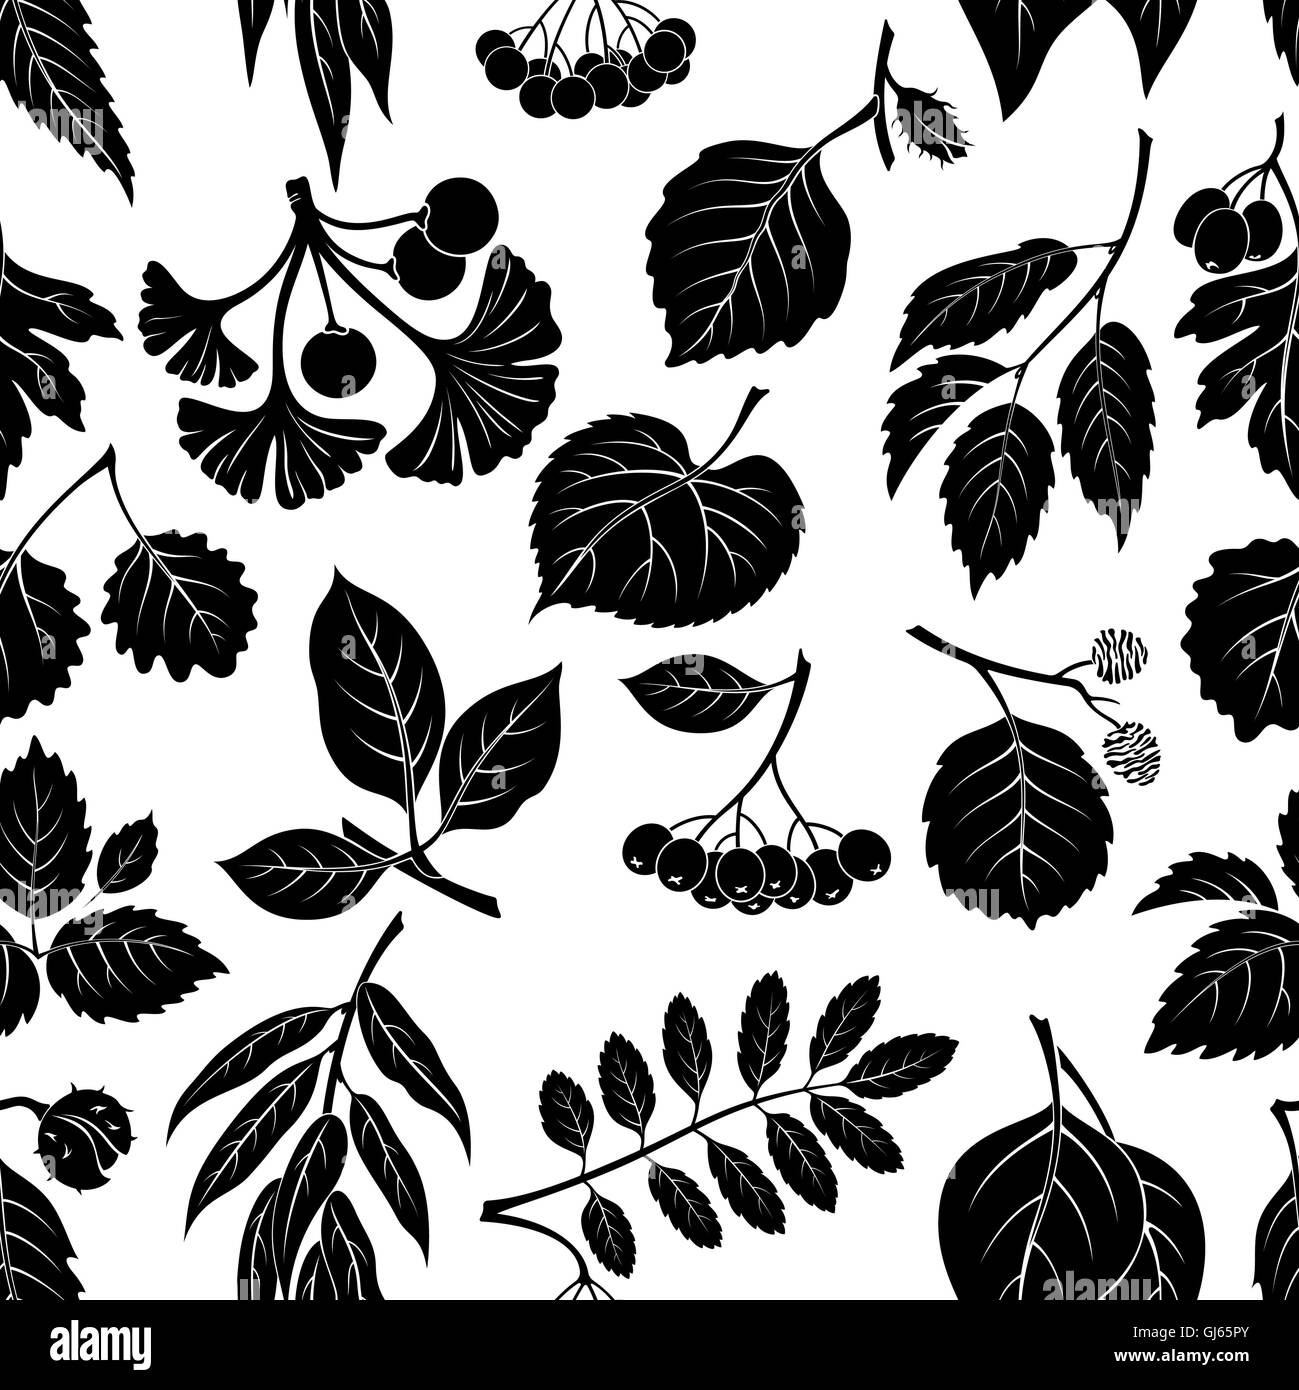 Leaves of Plants Pictogram, Seamless - Stock Image